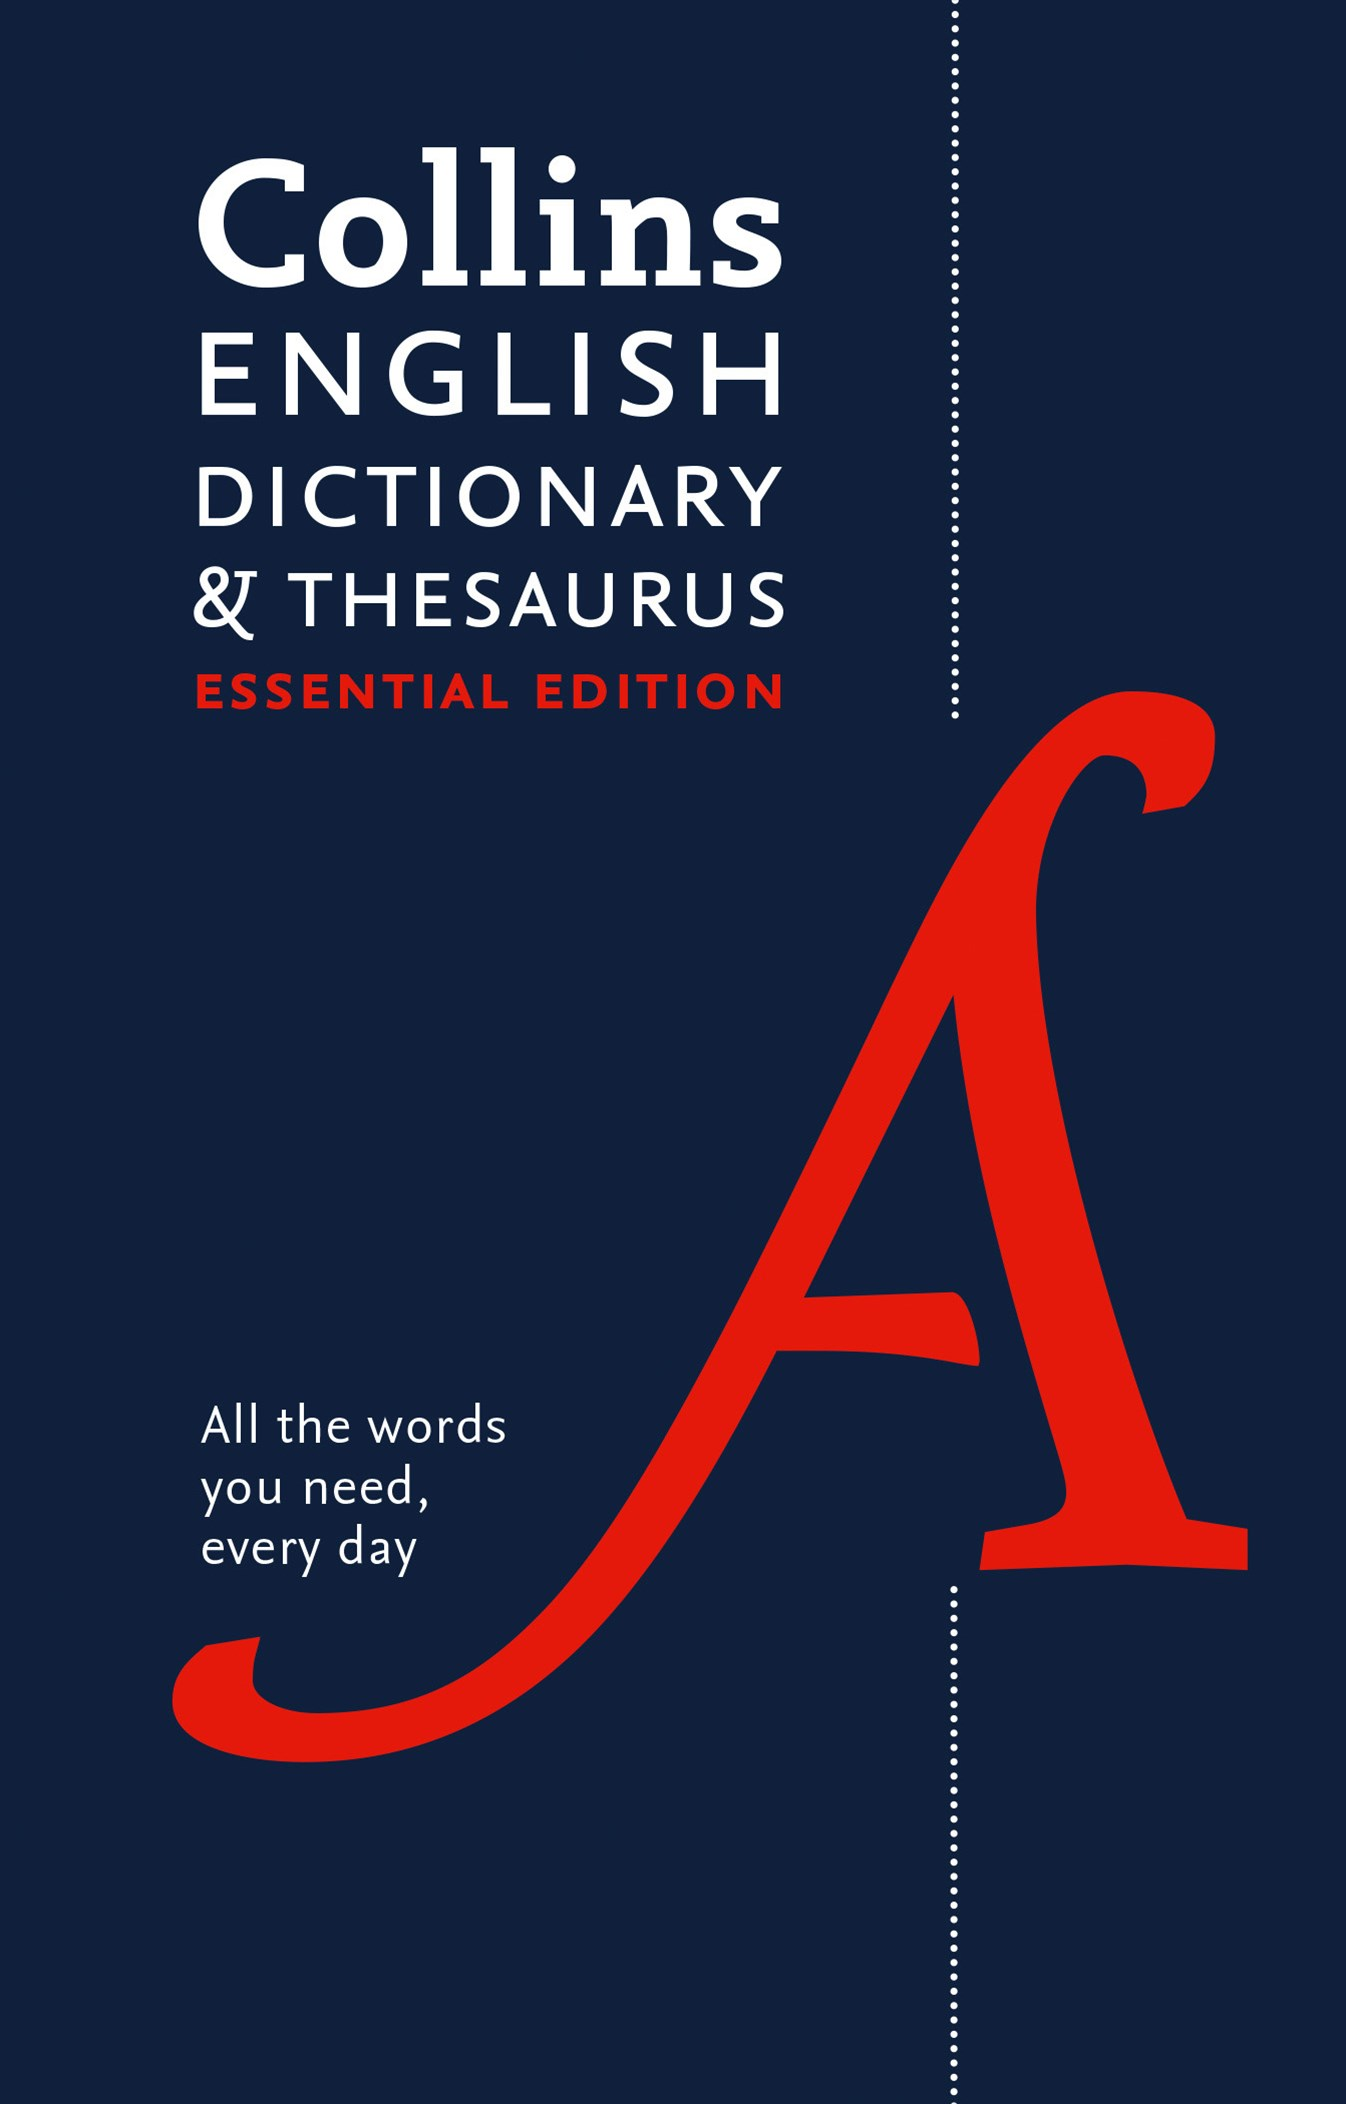 Collins English Dictionary and Thesaurus Essential Edition